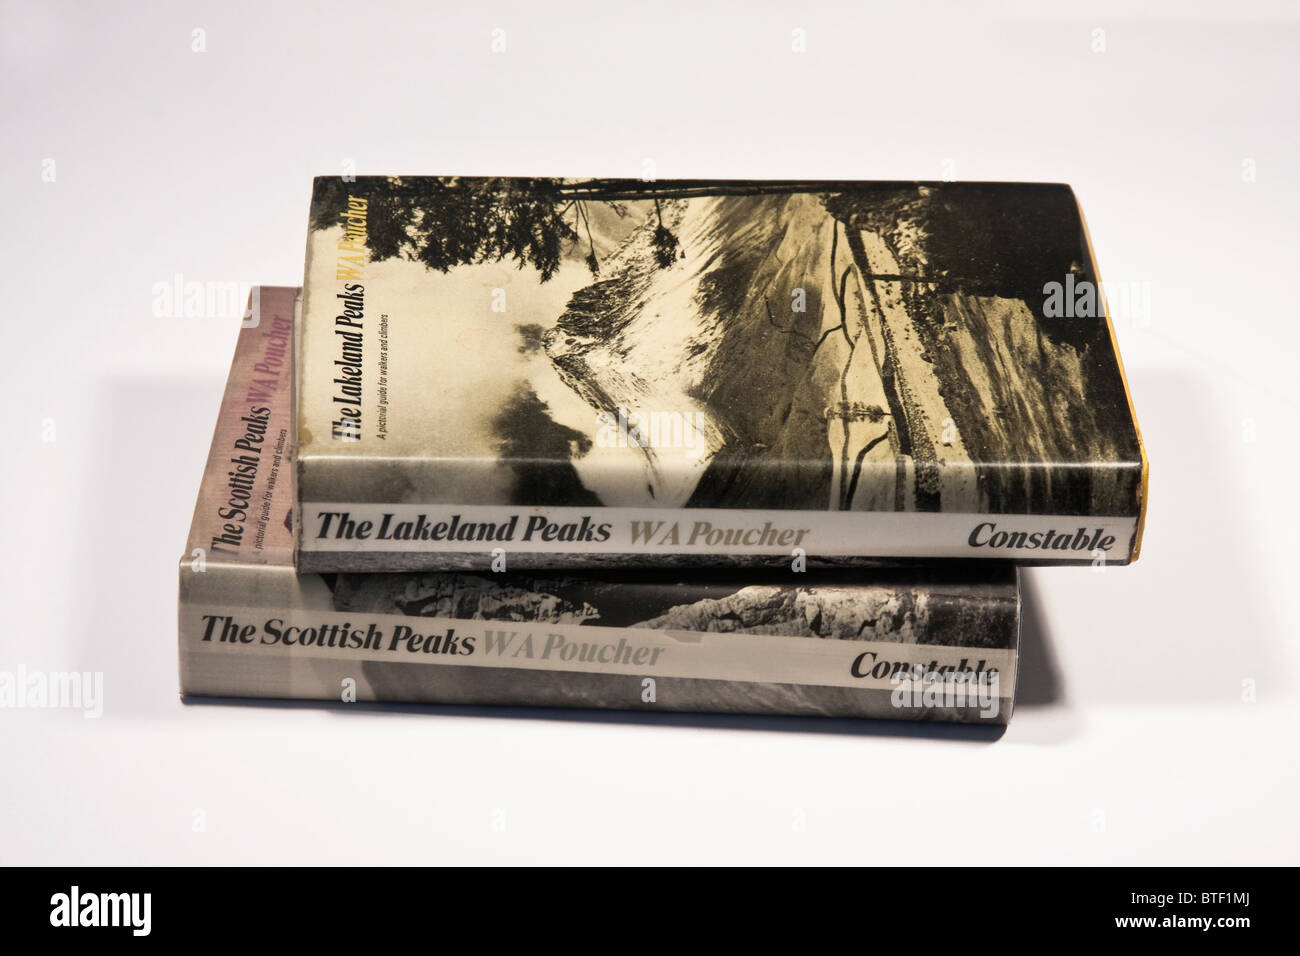 Old 'mountain guide' books by 'WA Poucher' - Stock Image